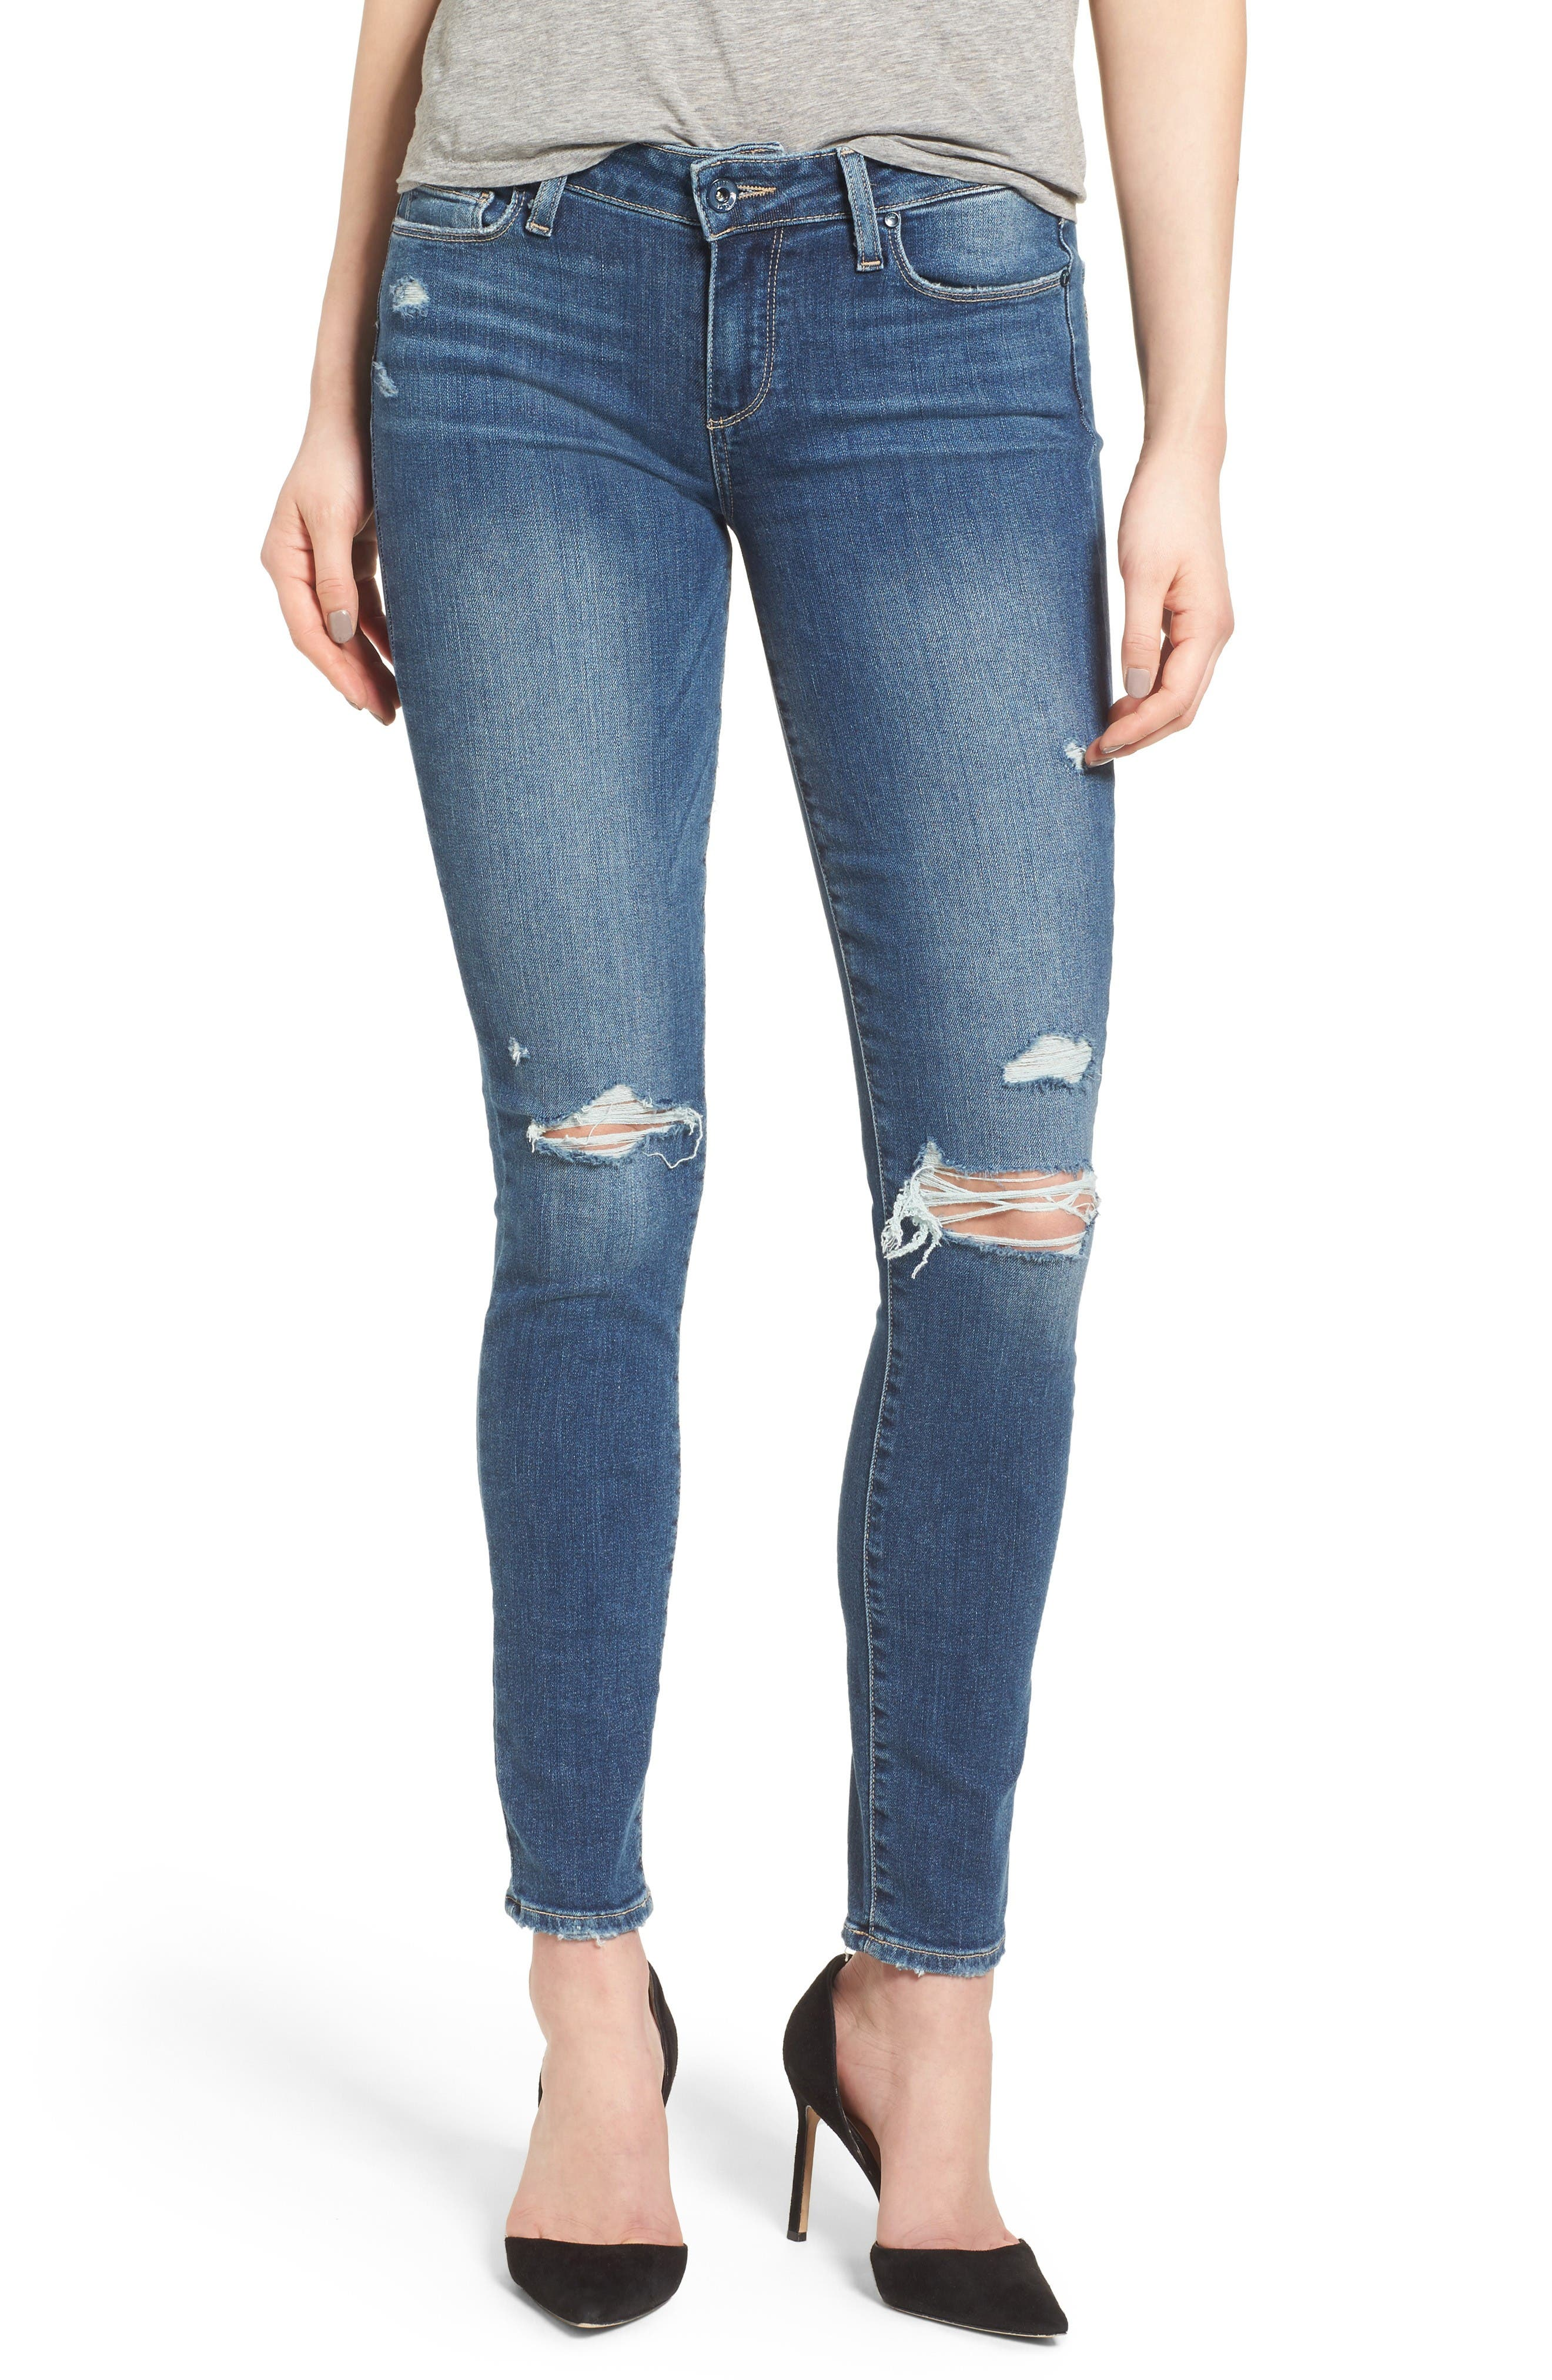 Main Image - PAIGE Verdugo Ripped Ultra Skinny Jeans (Destructed Blue)